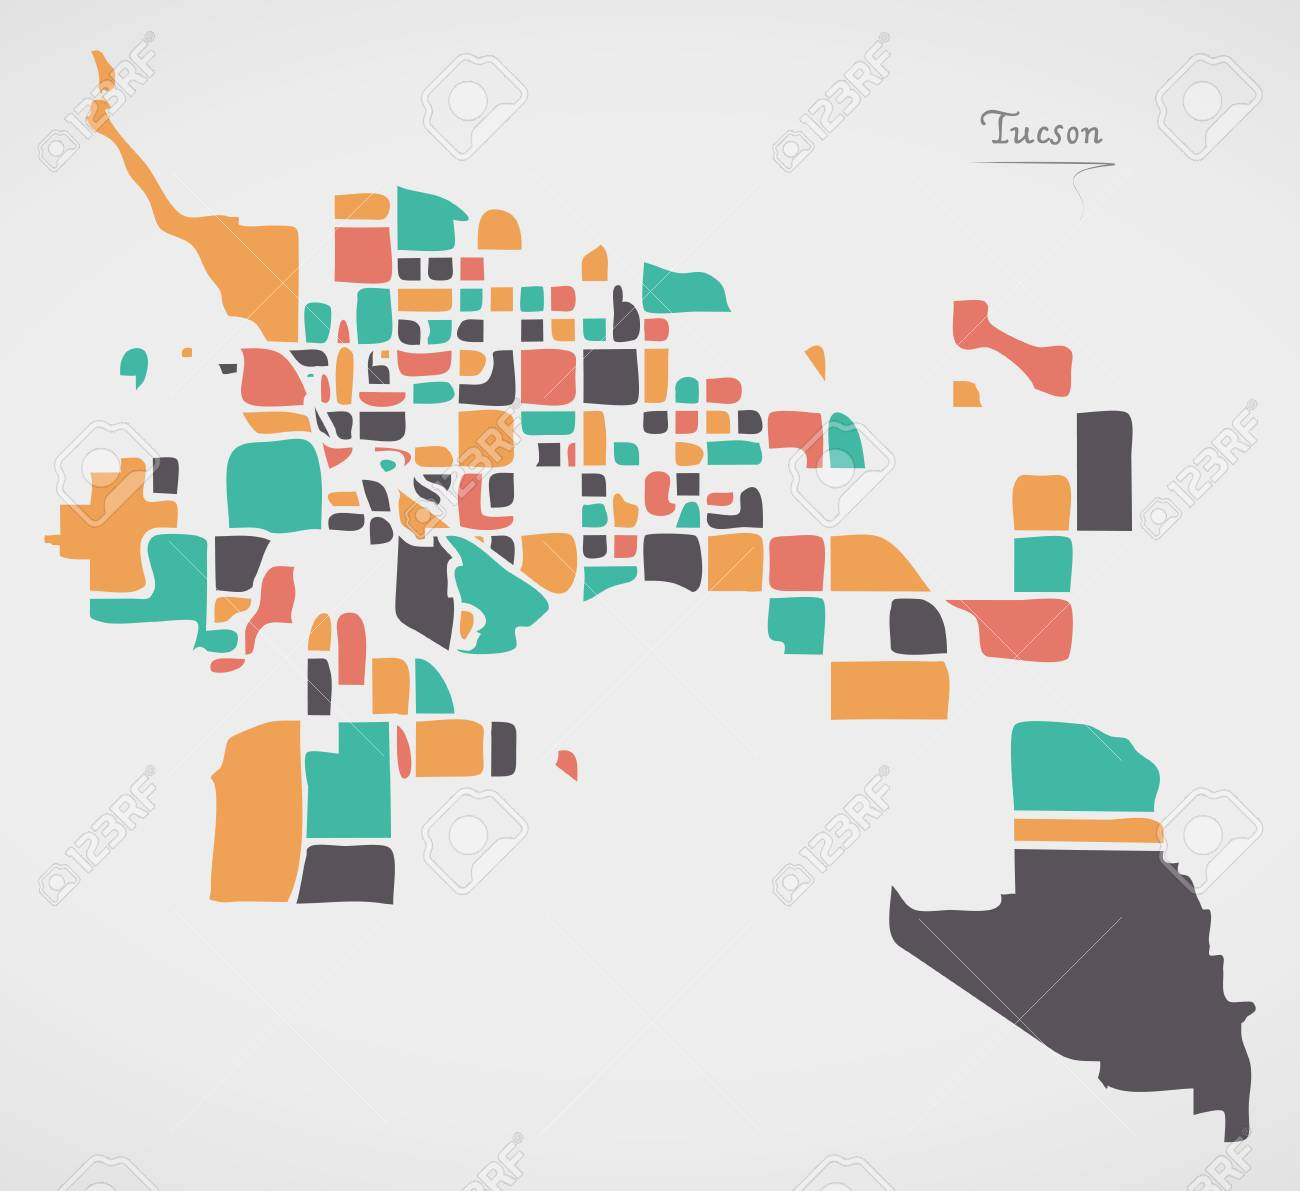 Tucson Arizona Map With Neighborhoods And Modern Round Shapes ...